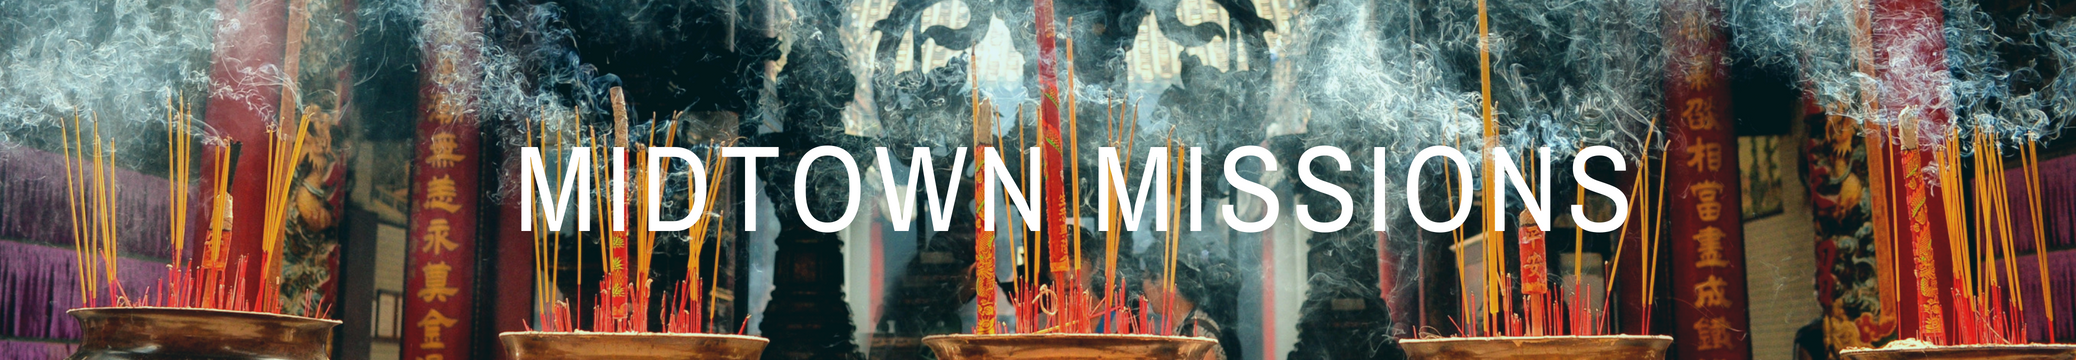 Midtown missions banner.png